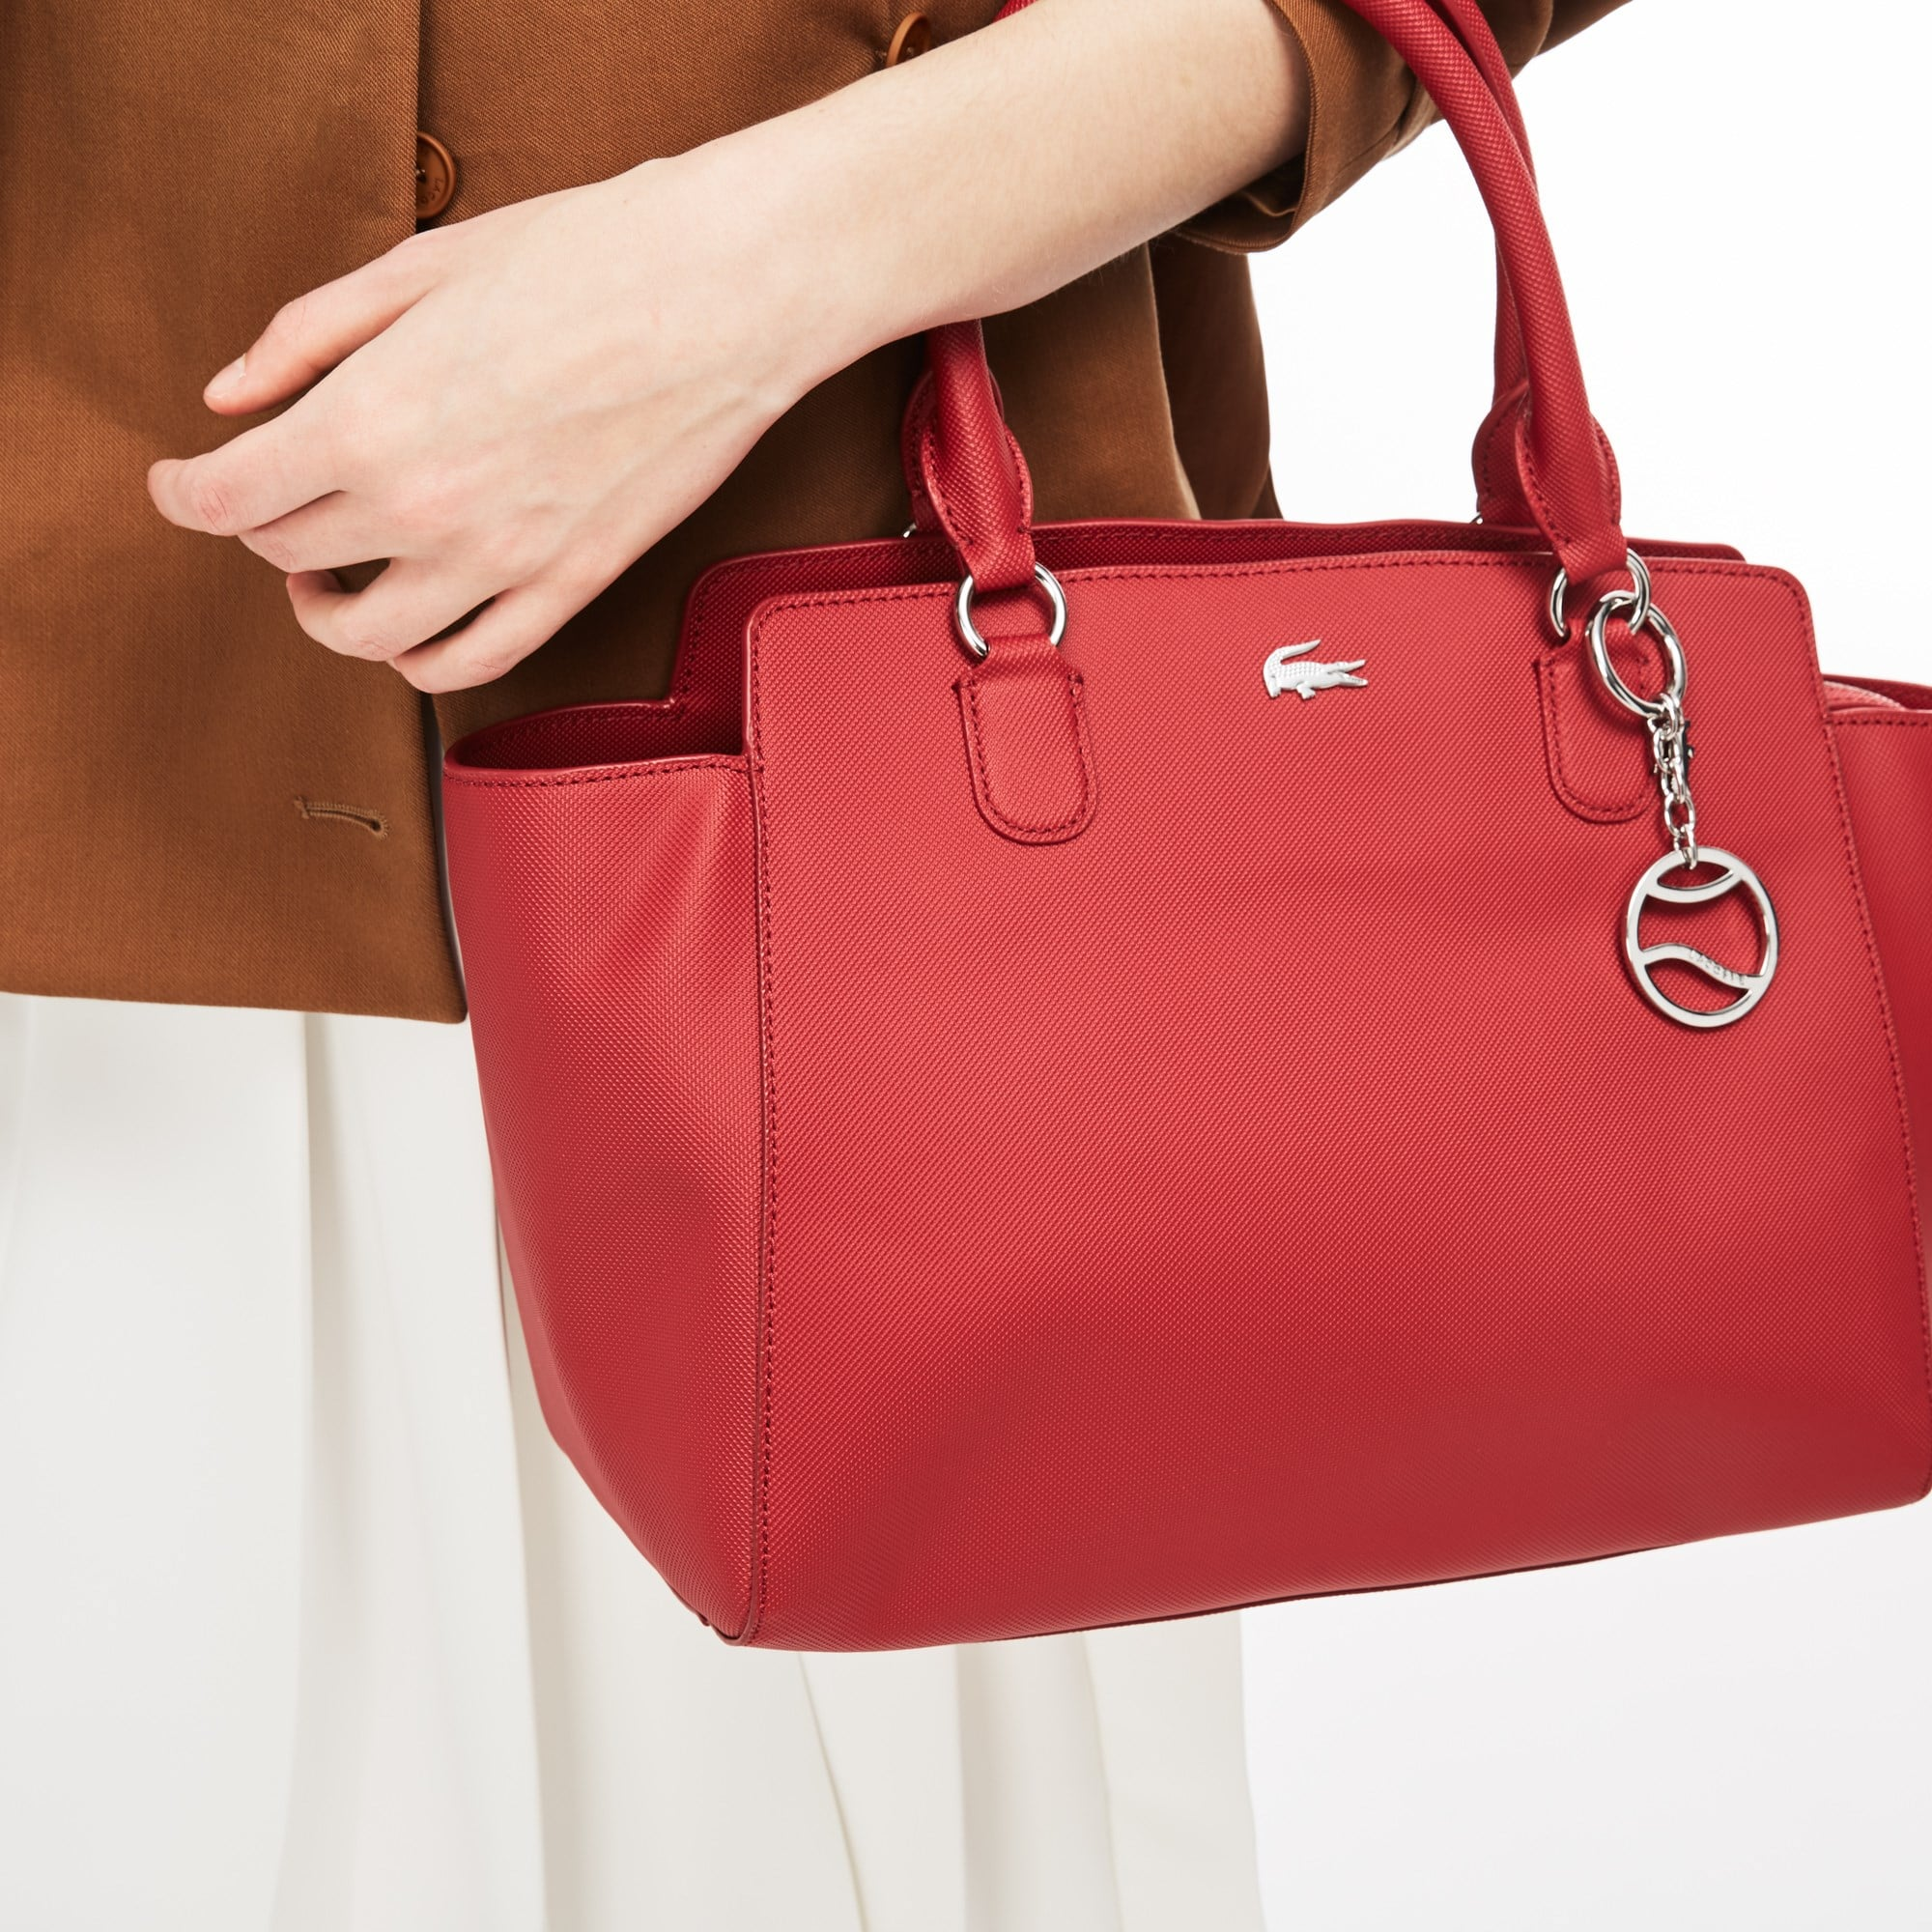 Women's Daily Classic Gusseted Coated Piqué Canvas Tote Bag